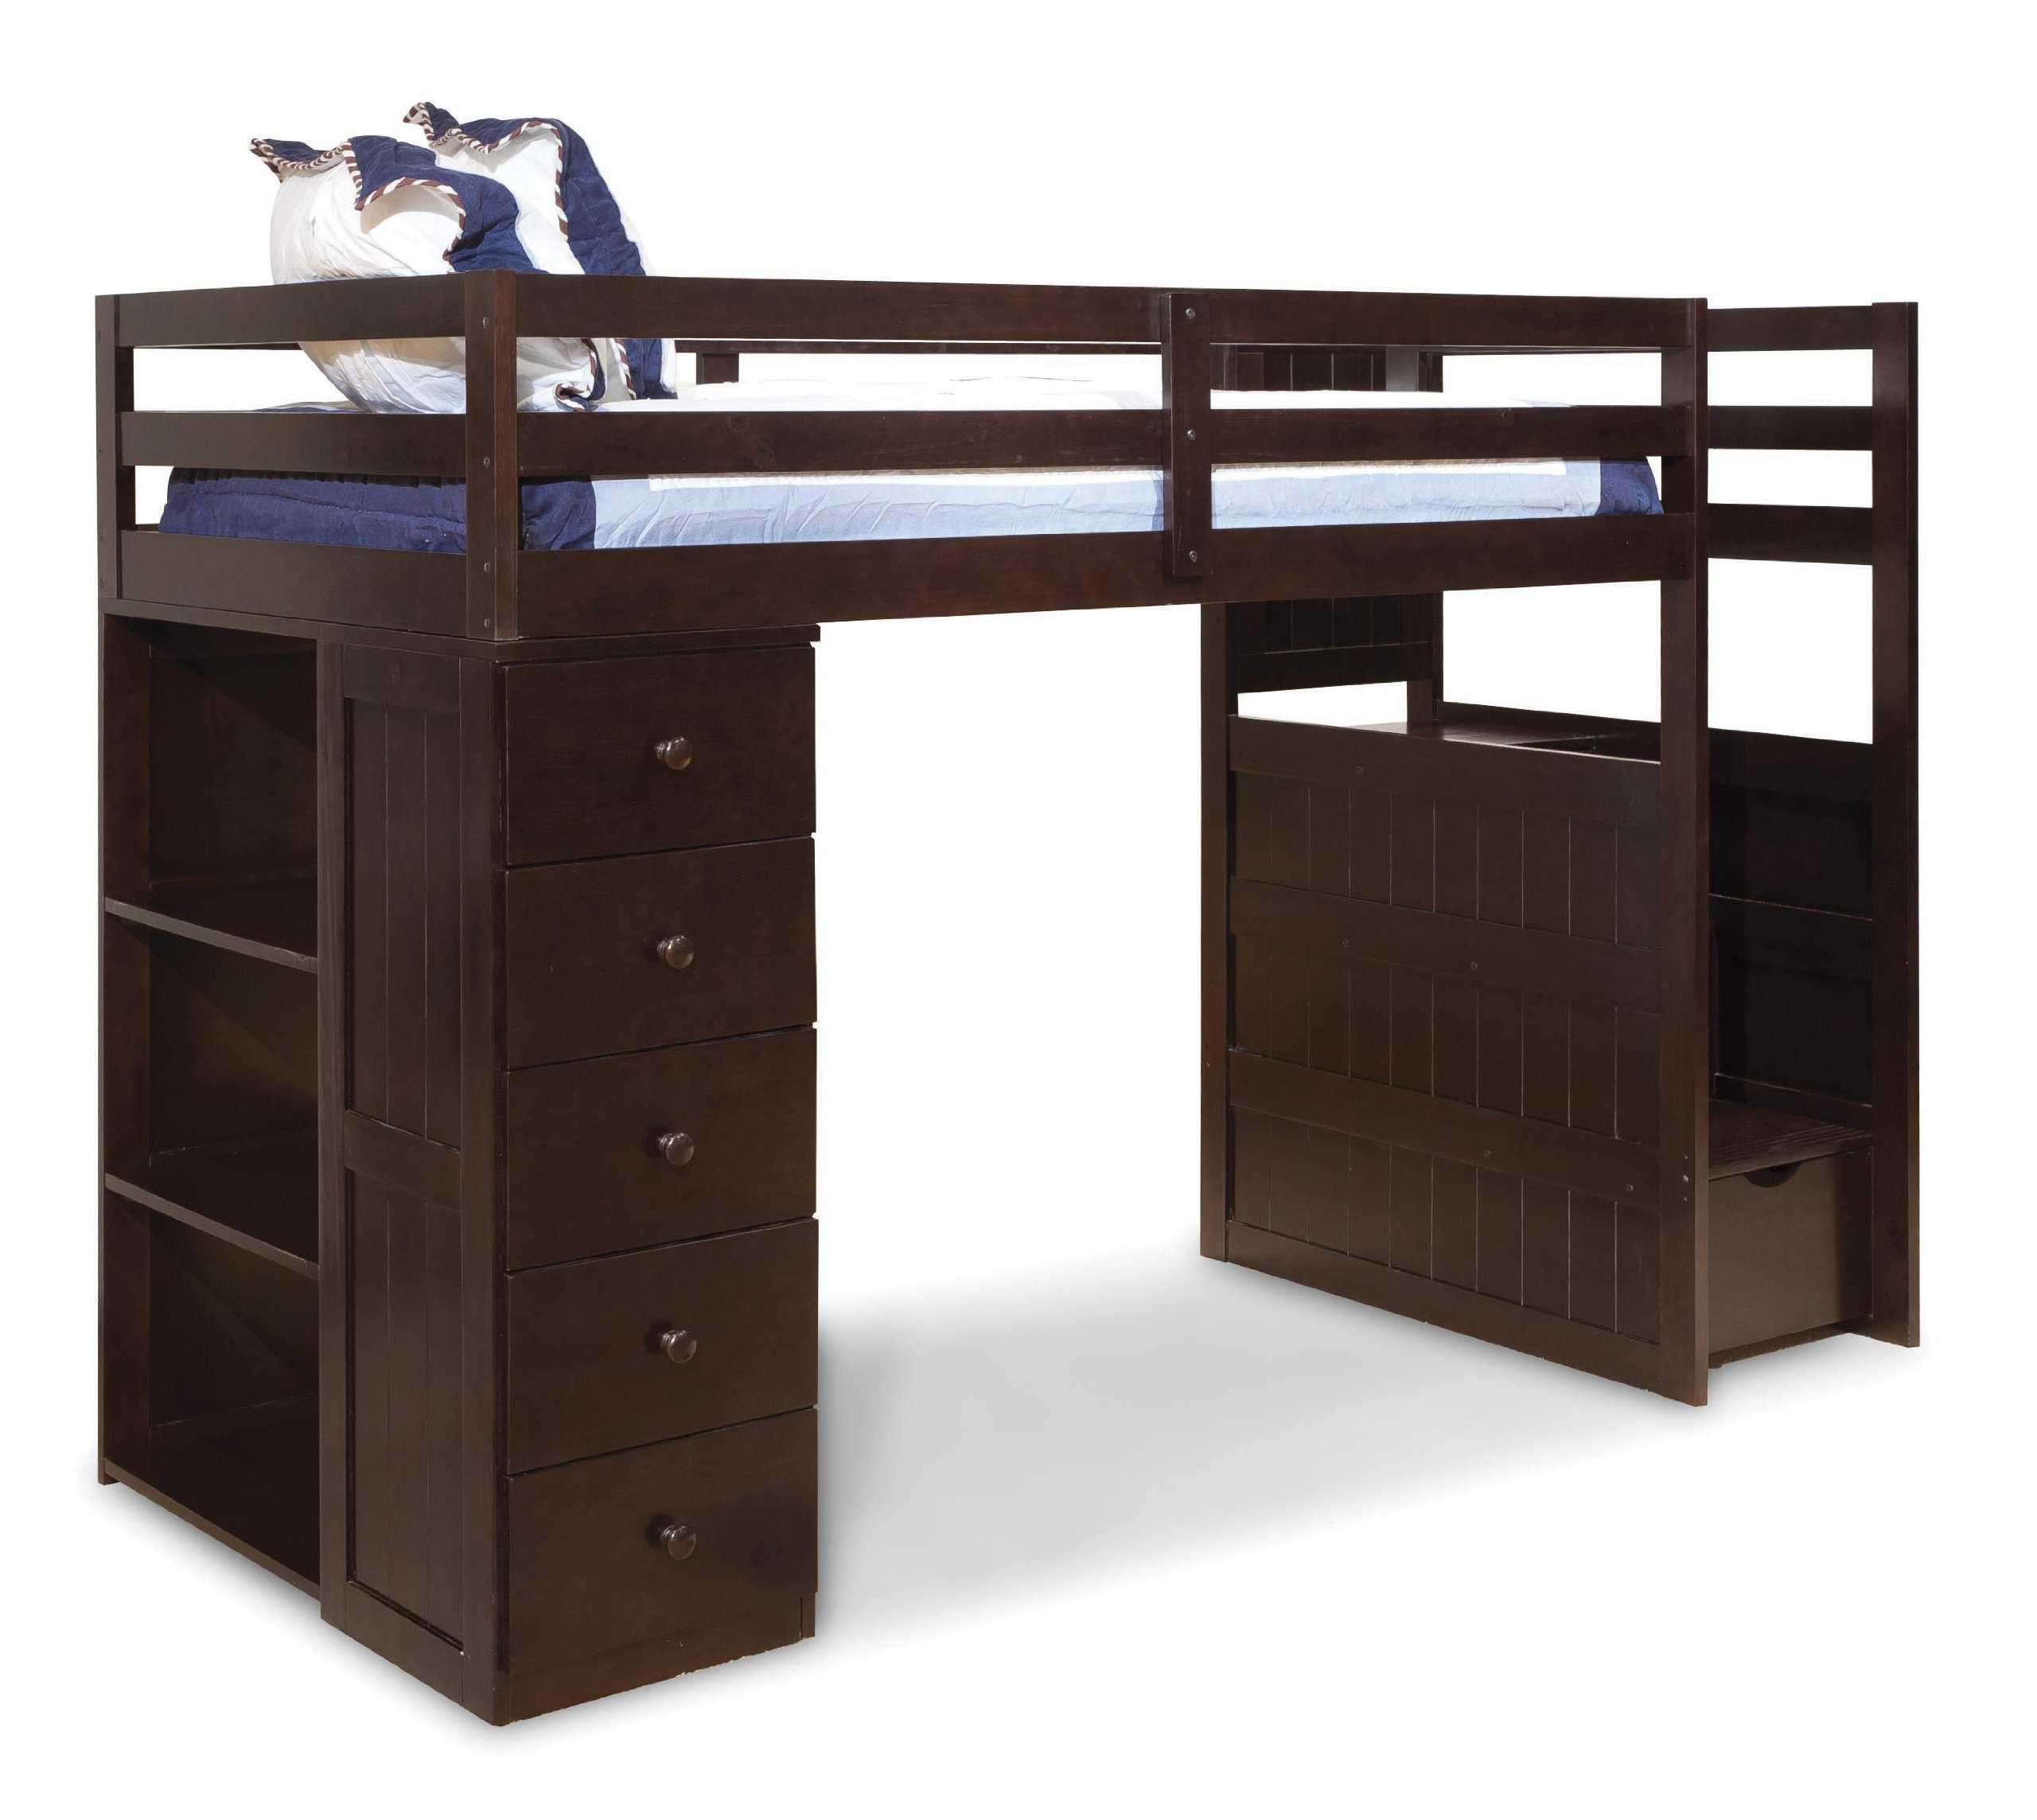 Canwood Mountaineer Loft Bed With Storage Tower And Built